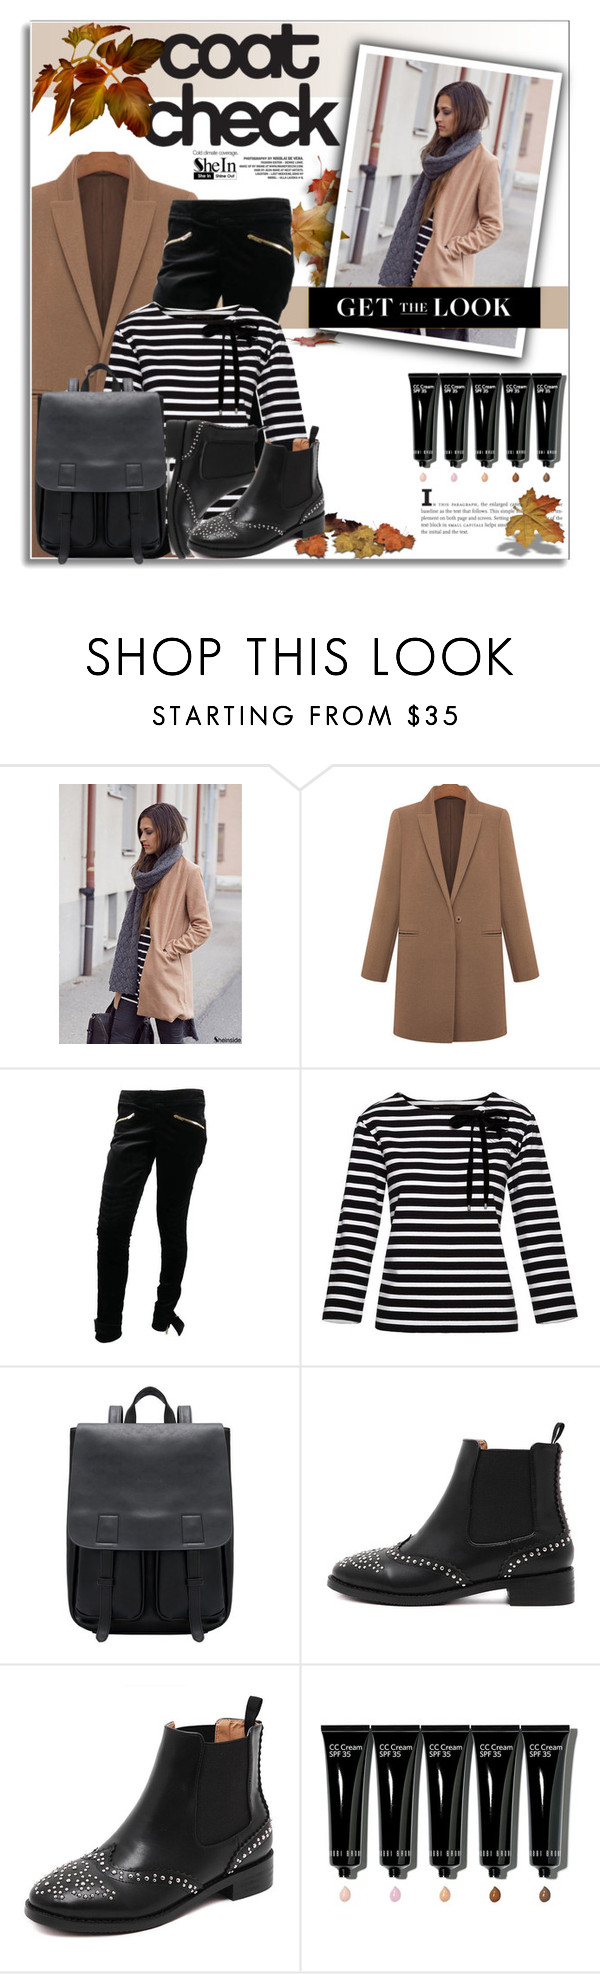 """Untitled #2192"" by deeyanago ❤ liked on Polyvore featuring Gucci, Marc by Marc Jacobs, Bobbi Brown Cosmetics, GetTheLook, Sheinside and coolcoat"